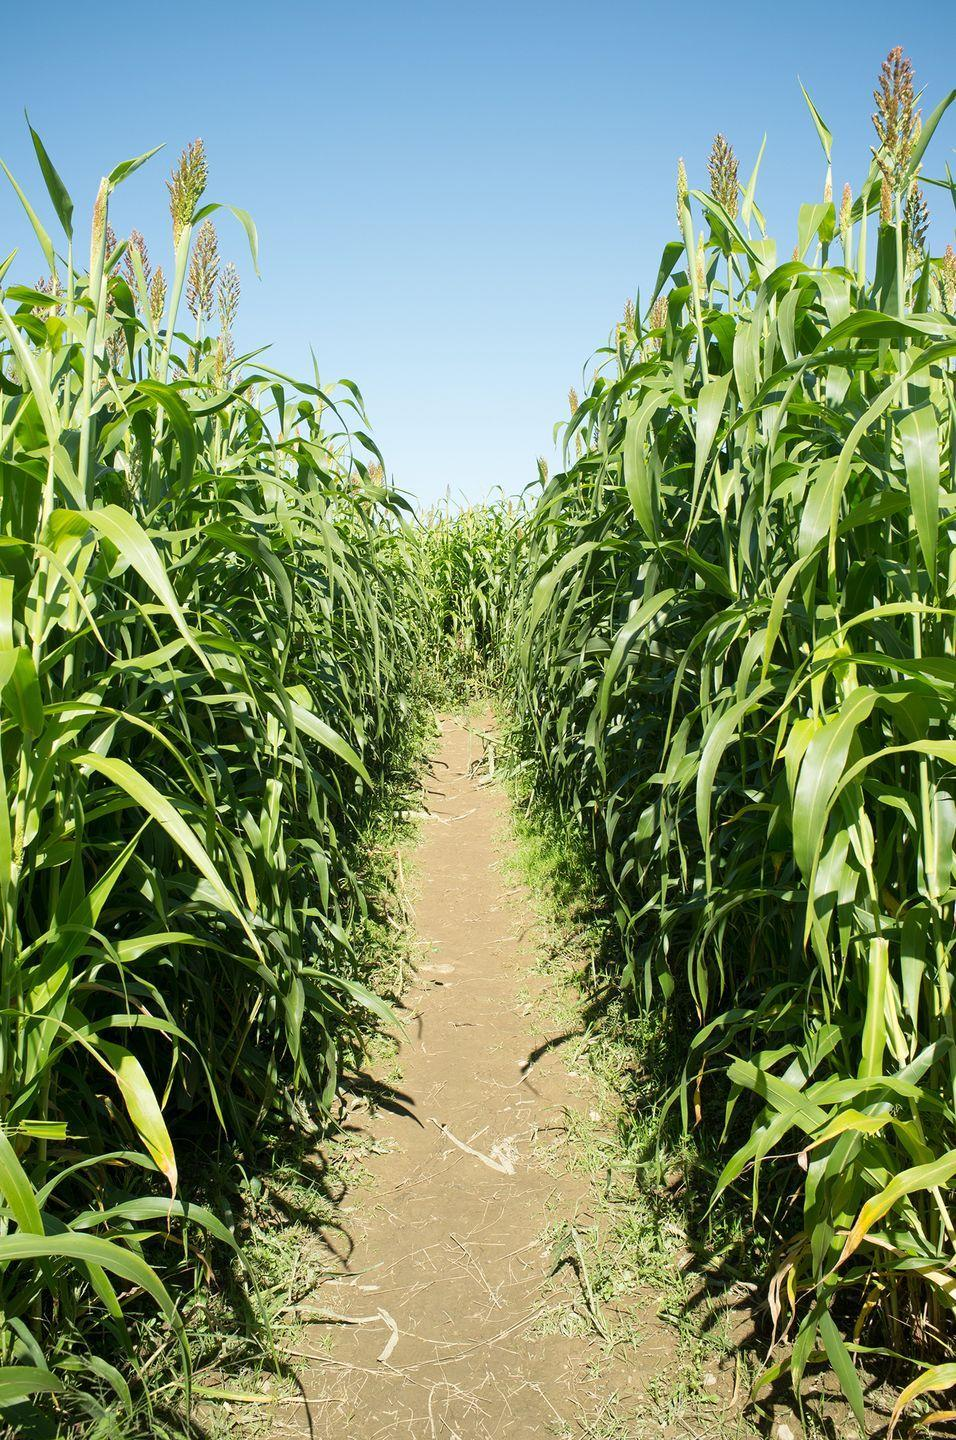 """<p>Illinois residents can celebrate their state's 200th birthday with a journey through <a href=""""https://richardsonadventurefarm.com/AdventureFarm/CornMaze"""" rel=""""nofollow noopener"""" target=""""_blank"""" data-ylk=""""slk:Richardson Farm"""" class=""""link rapid-noclick-resp"""">Richardson Farm</a>'s bicentennial-themed corn maze. With more than 28 acres of corn fields, you can easily spend a few hours to a whole day at this Spring Grove attraction. </p><p><a class=""""link rapid-noclick-resp"""" href=""""https://go.redirectingat.com?id=74968X1596630&url=https%3A%2F%2Fwww.tripadvisor.com%2FAttractions-g36726-Activities-Spring_Grove_Illinois.html&sref=https%3A%2F%2Fwww.countryliving.com%2Flife%2Ftravel%2Fg22717241%2Fcorn-maze-near-me%2F"""" rel=""""nofollow noopener"""" target=""""_blank"""" data-ylk=""""slk:PLAN YOUR TRIP"""">PLAN YOUR TRIP</a></p>"""